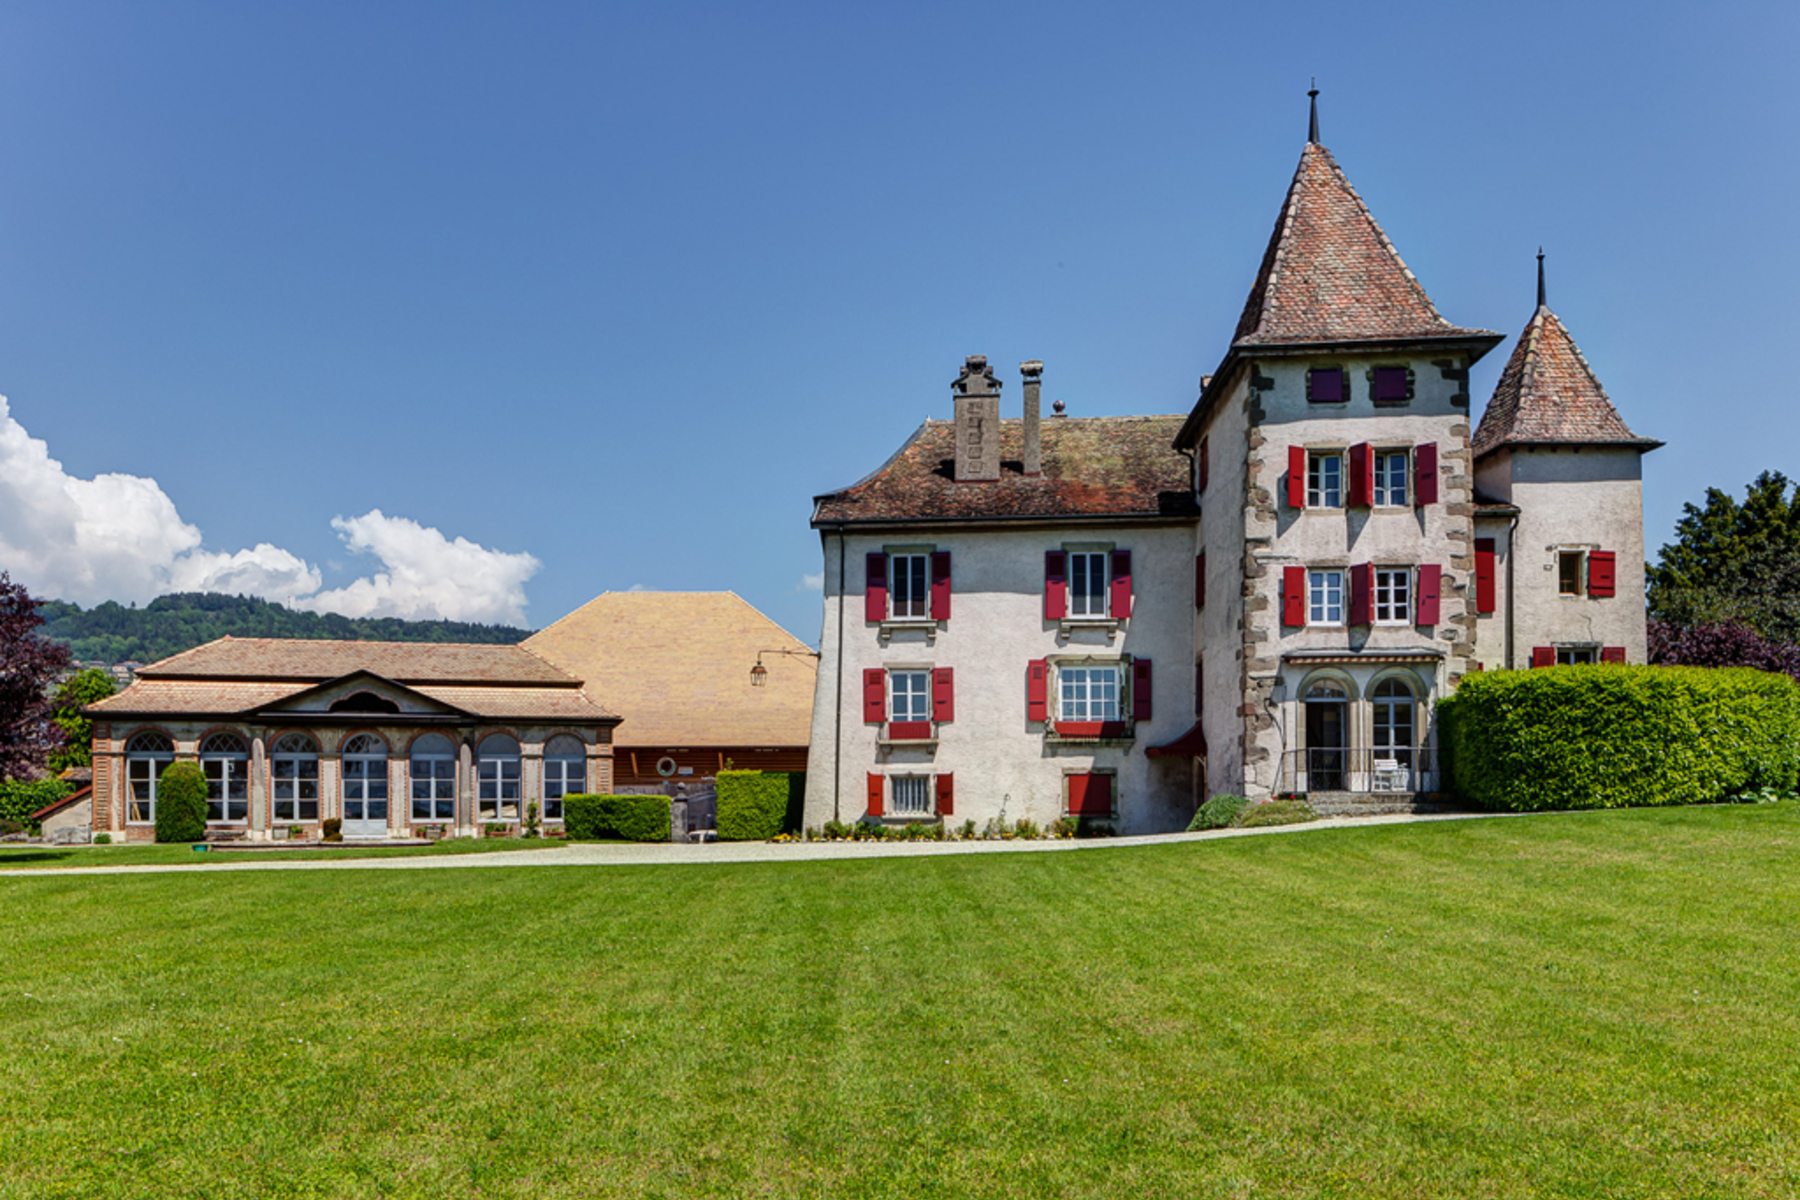 Single Family Home for Sale at Splendid 17th-century castle on La Côte Perroy Other Switzerland, Other Areas In Switzerland, 1166 Switzerland